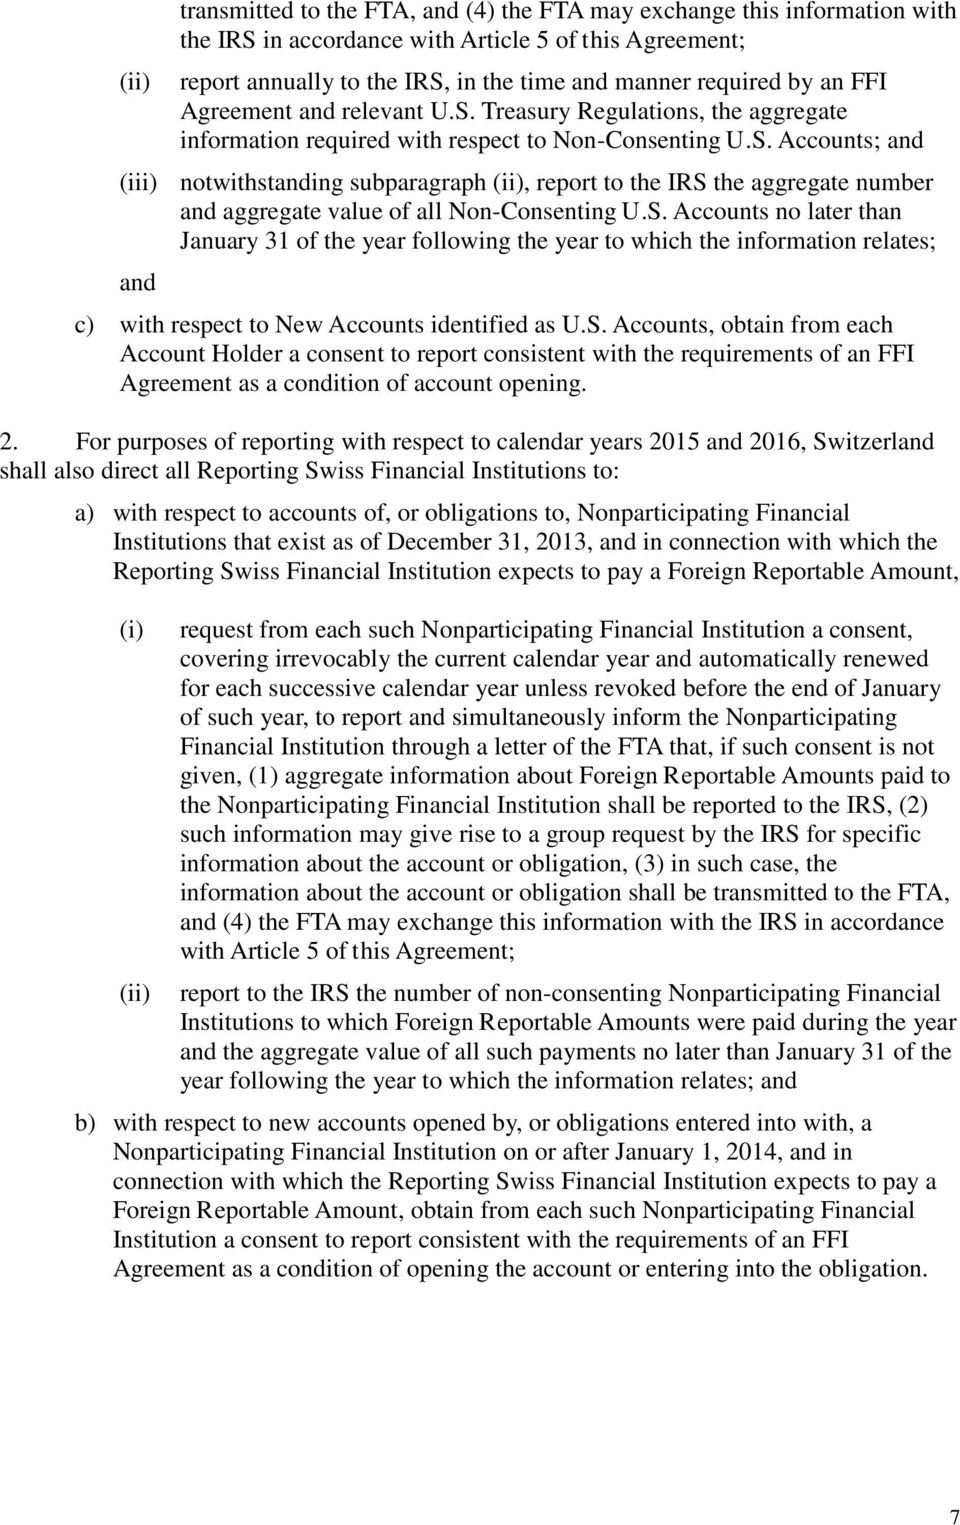 S. Accounts no later than January 31 of the year following the year to which the information relates; and c) with respect to New Accounts identified as U.S. Accounts, obtain from each Account Holder a consent to report consistent with the requirements of an FFI Agreement as a condition of account opening.